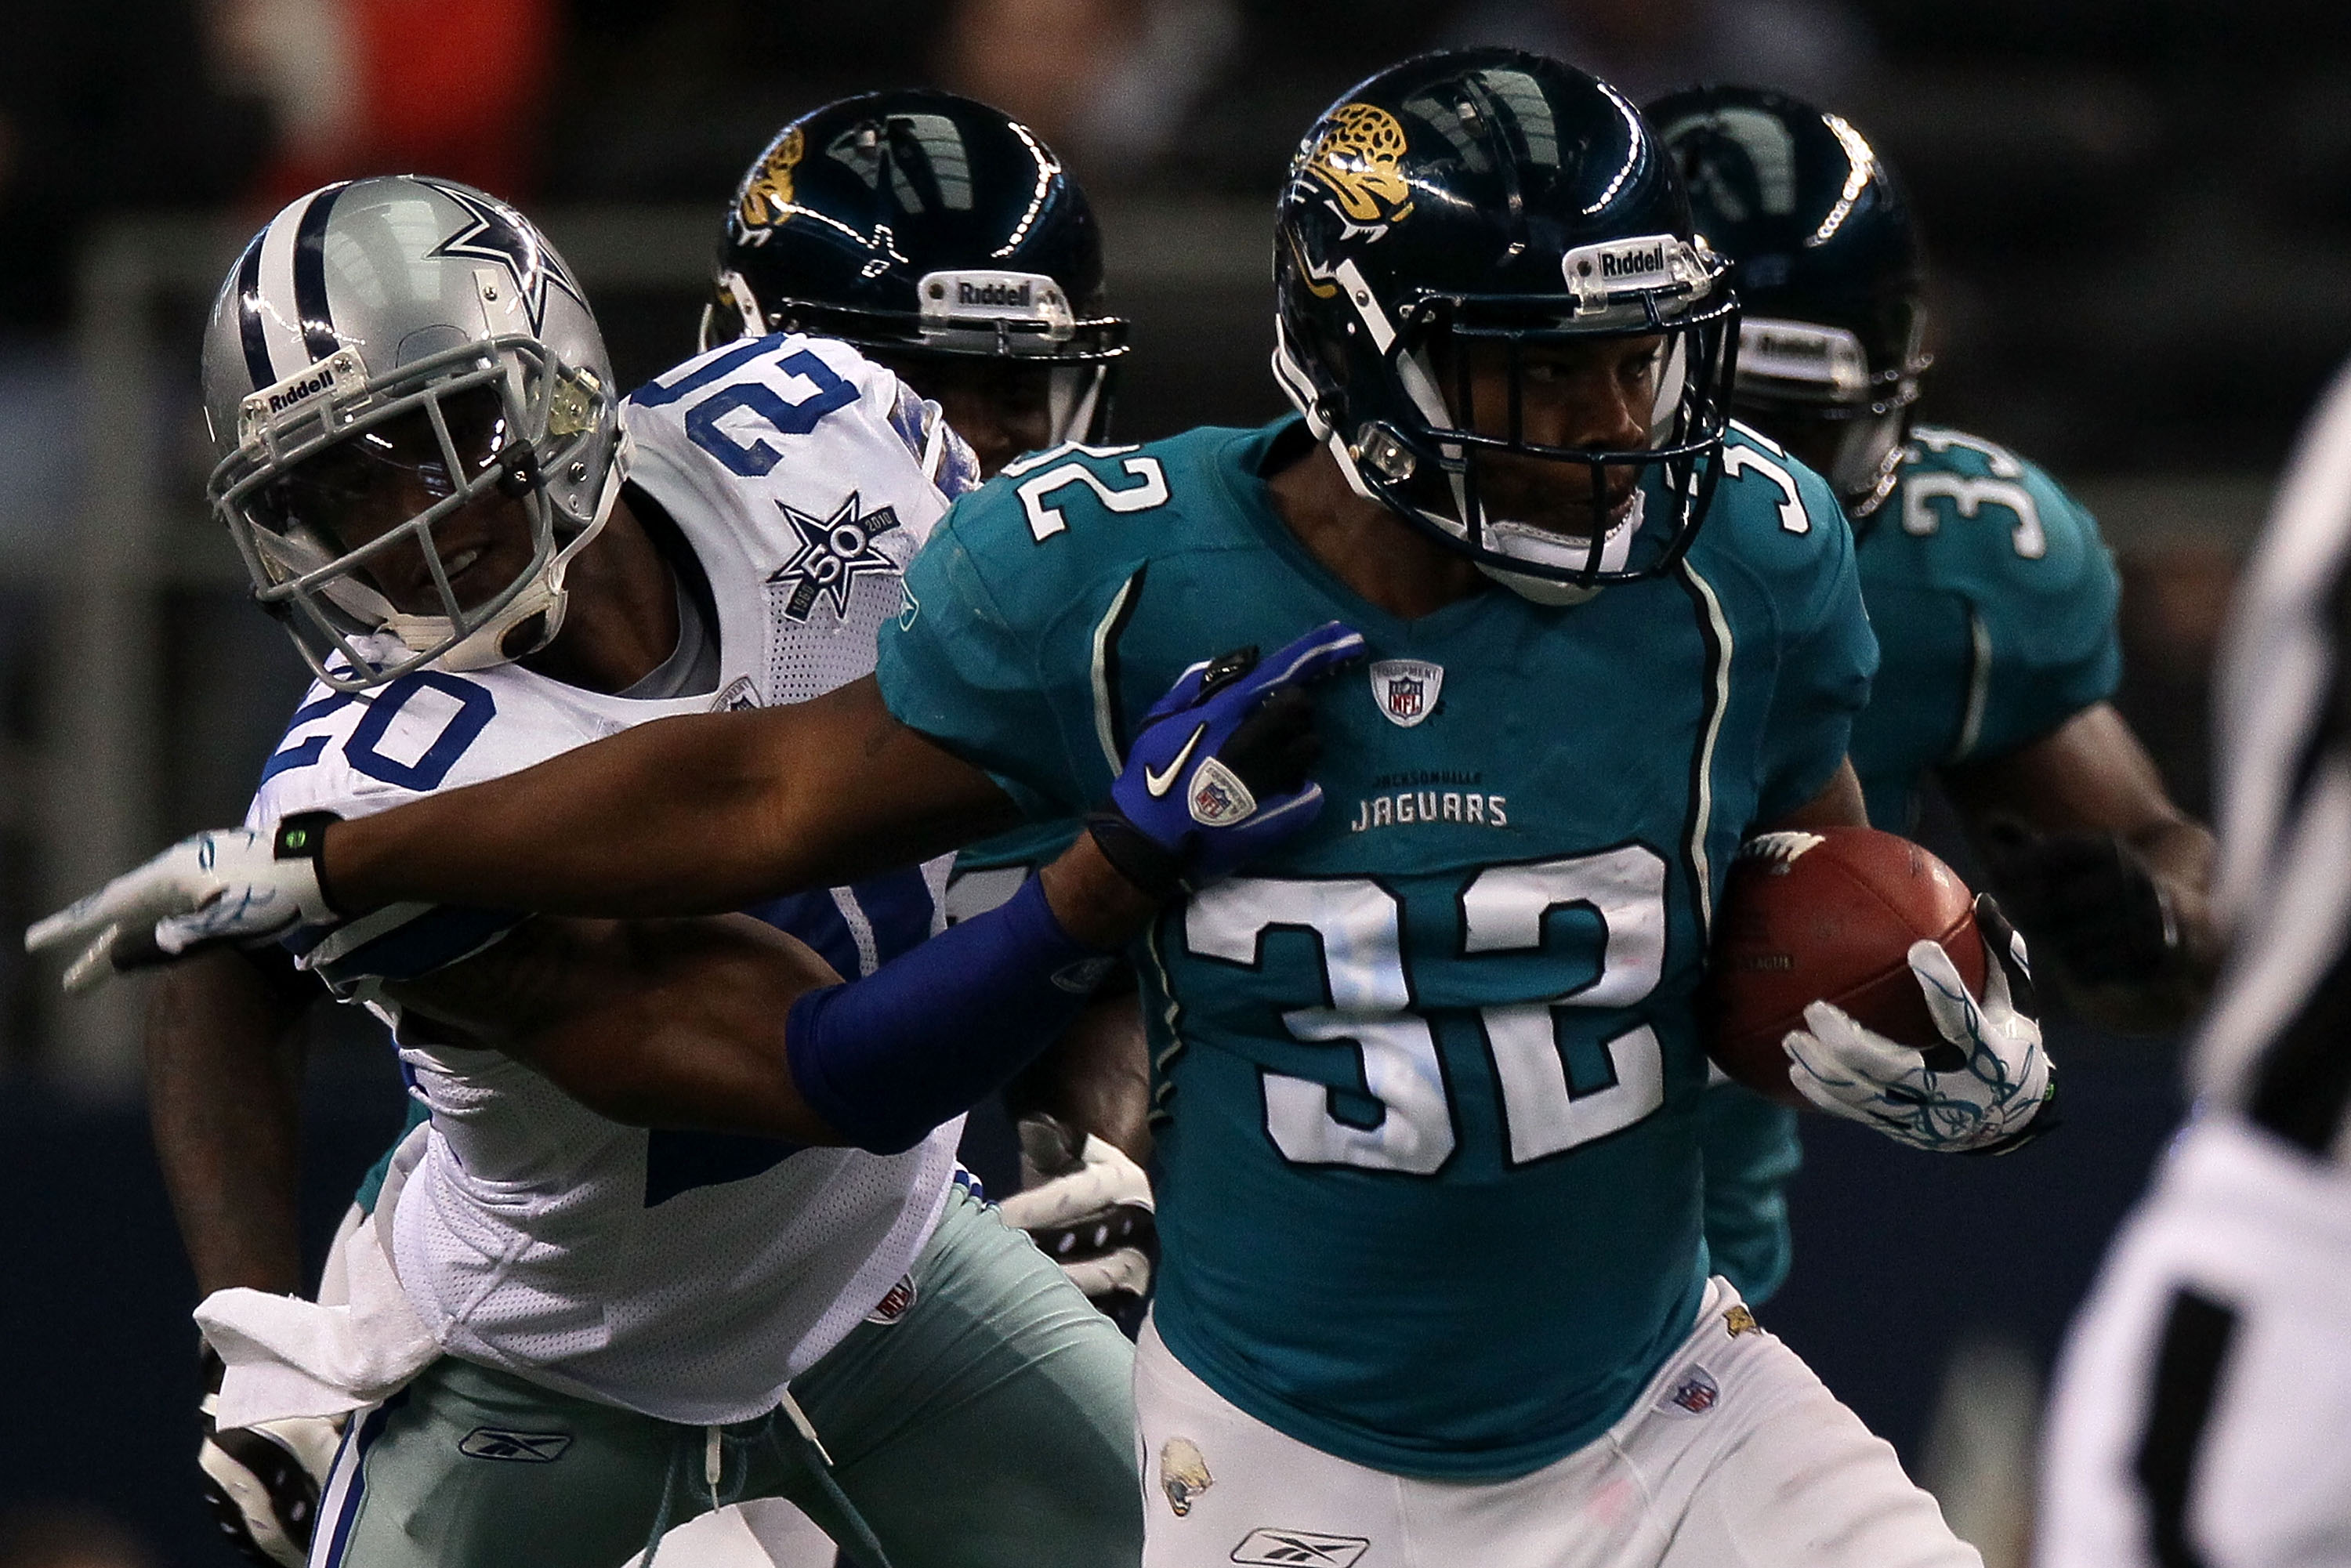 ARLINGTON, TX - OCTOBER 31:  Maurice Jones-Drew #32 of the Jacksonville Jaguars runs the ball against Alan Ball#20 of the Dallas Cowboys at Cowboys Stadium on October 31, 2010 in Arlington, Texas.  (Photo by Stephen Dunn/Getty Images)